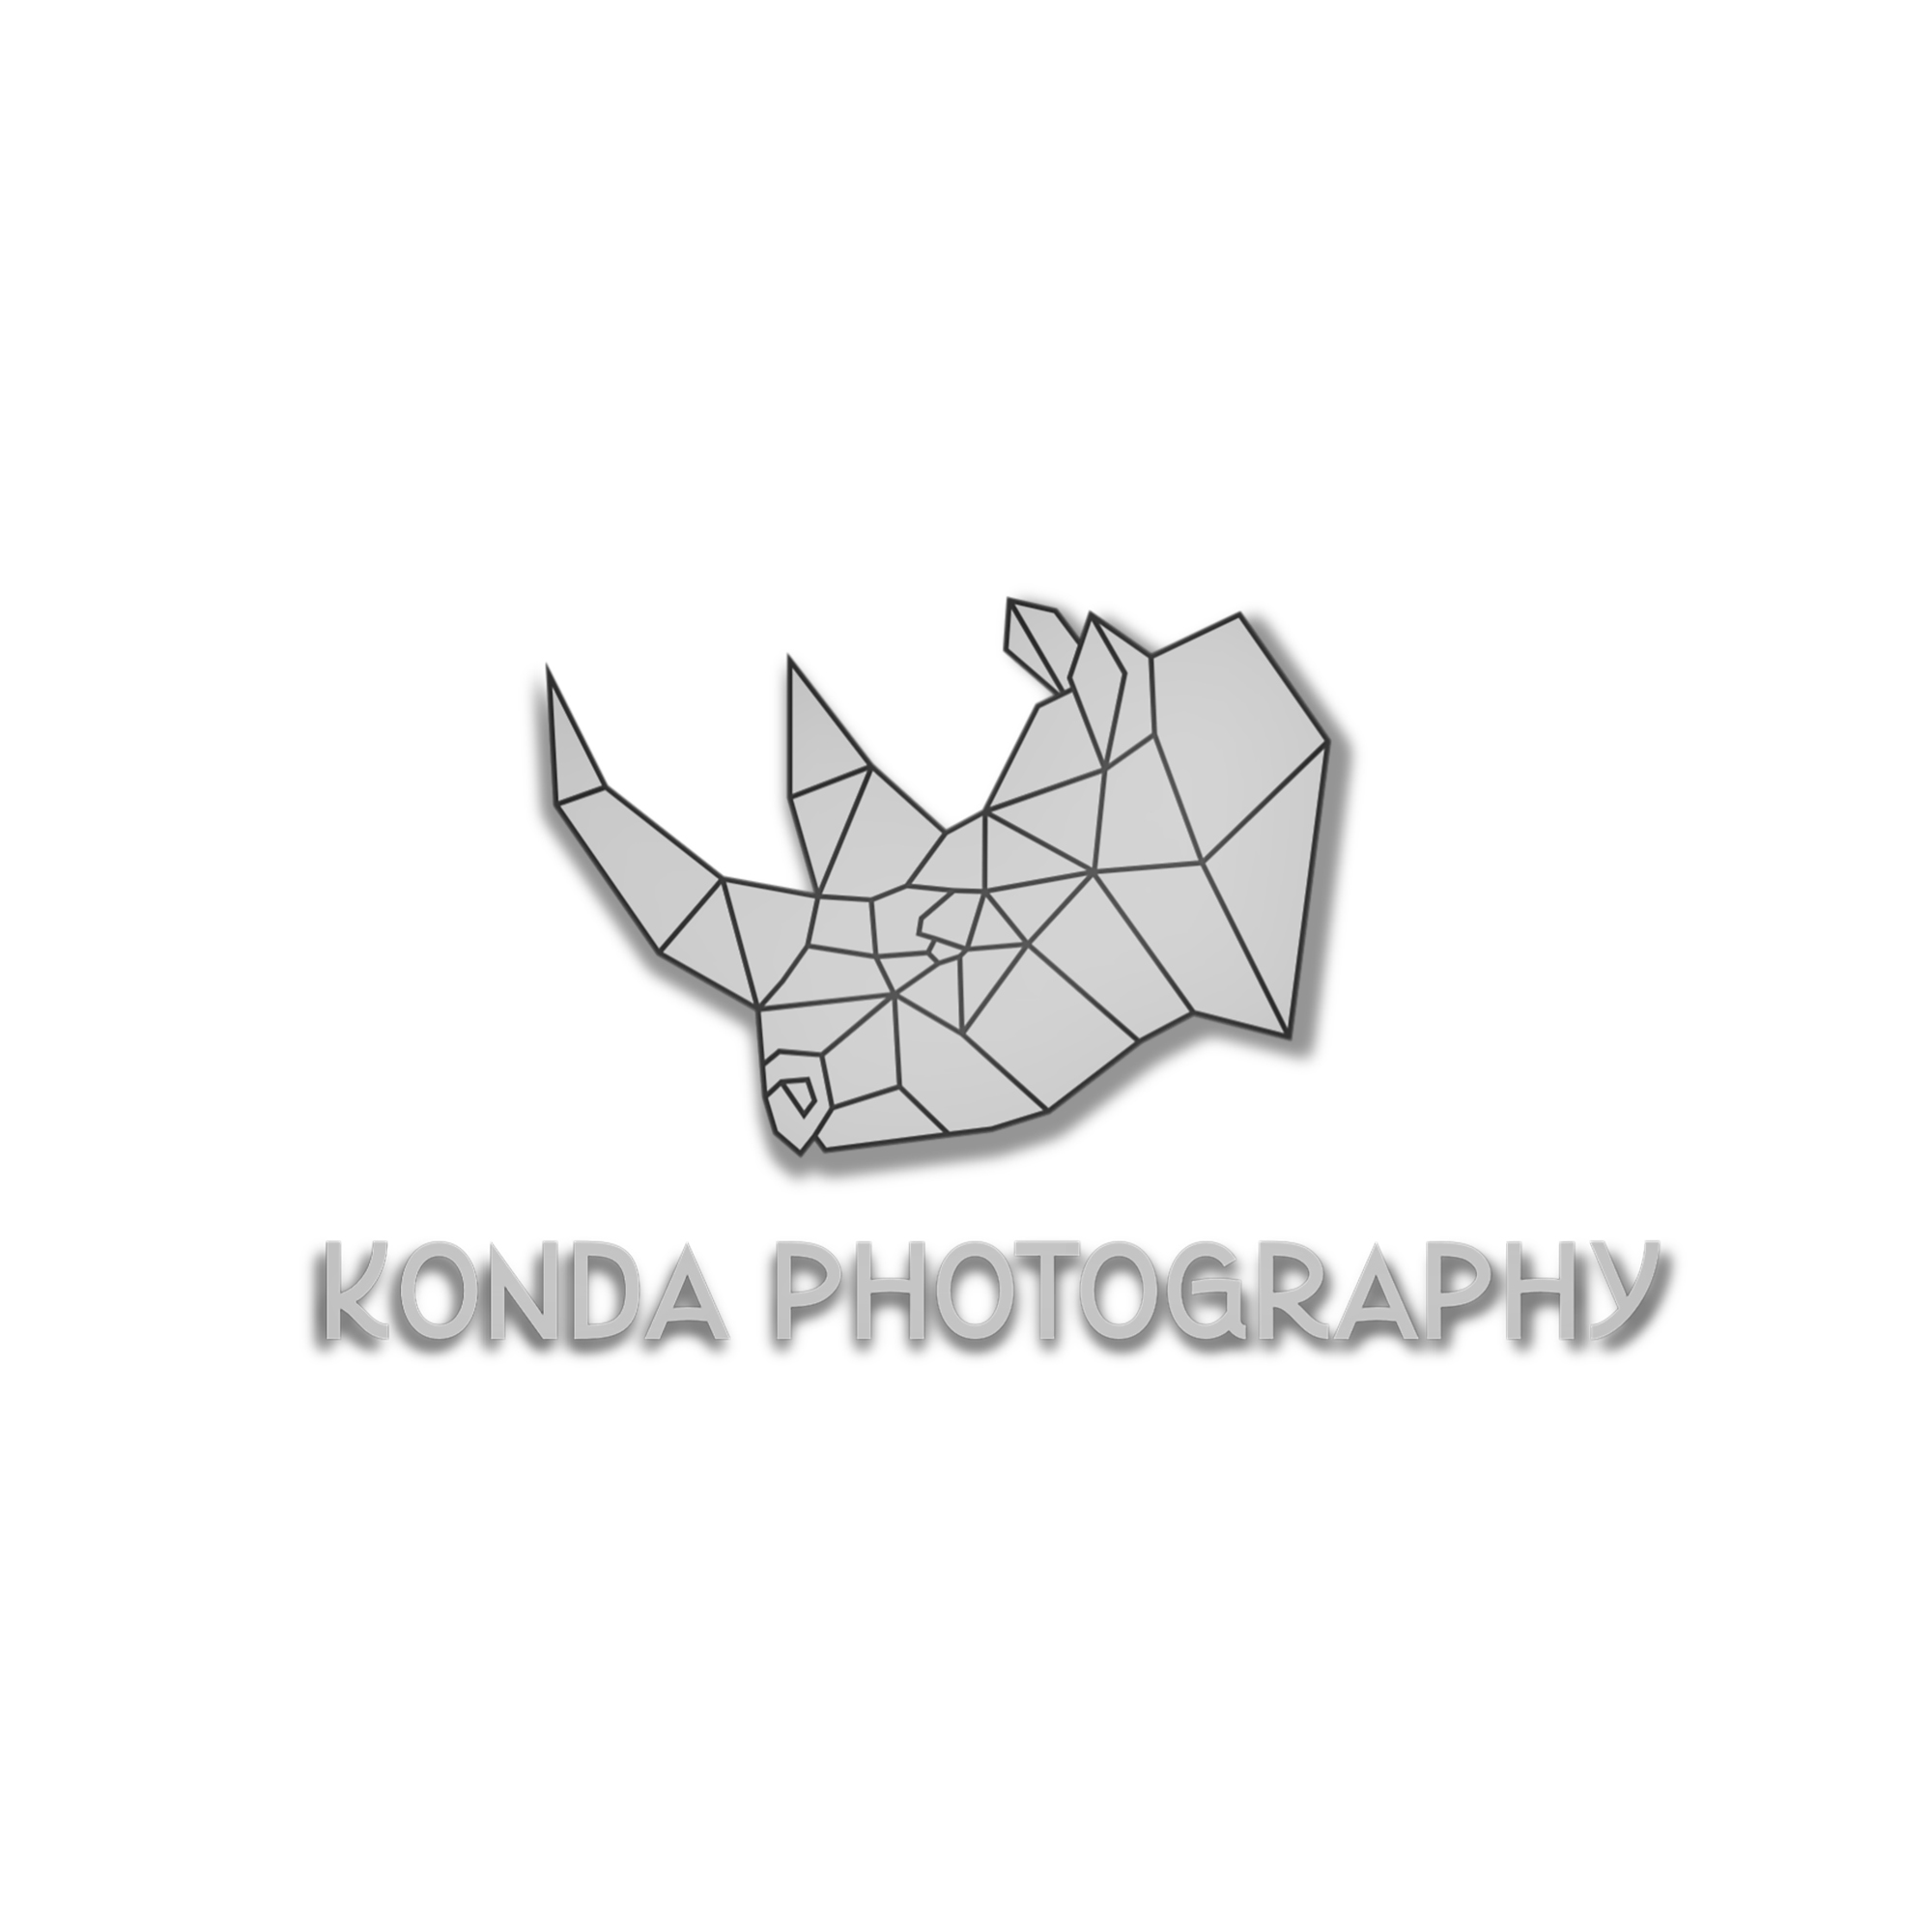 Konda Photography